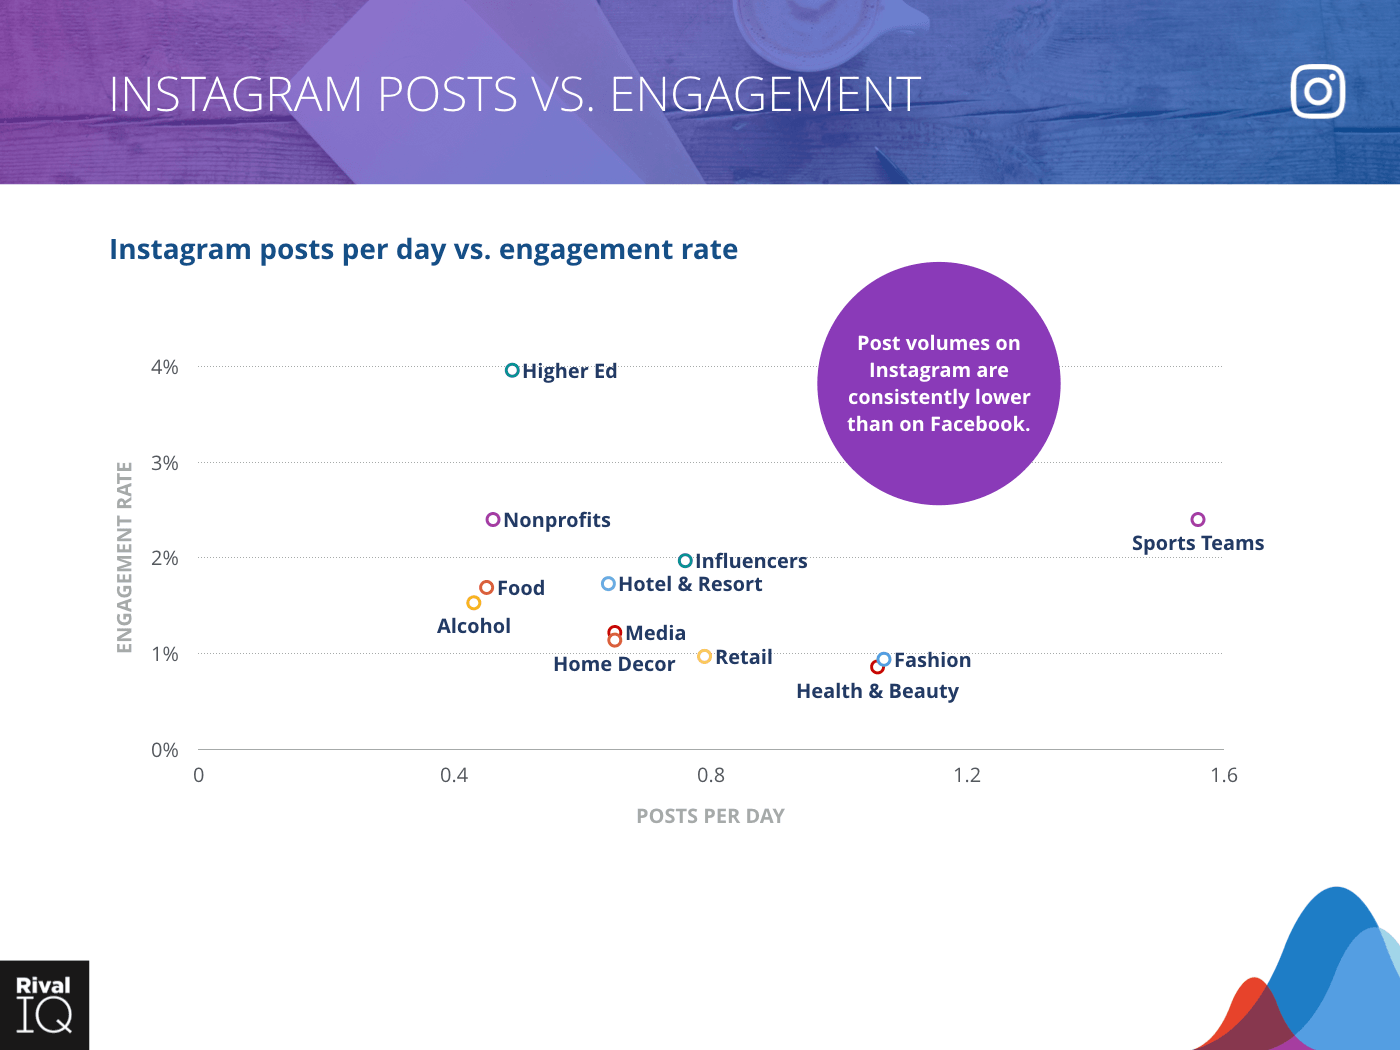 Scatter graph for Instagram posts per day vs. engagement rate, all industries - Sports Teams with highest at 1.6